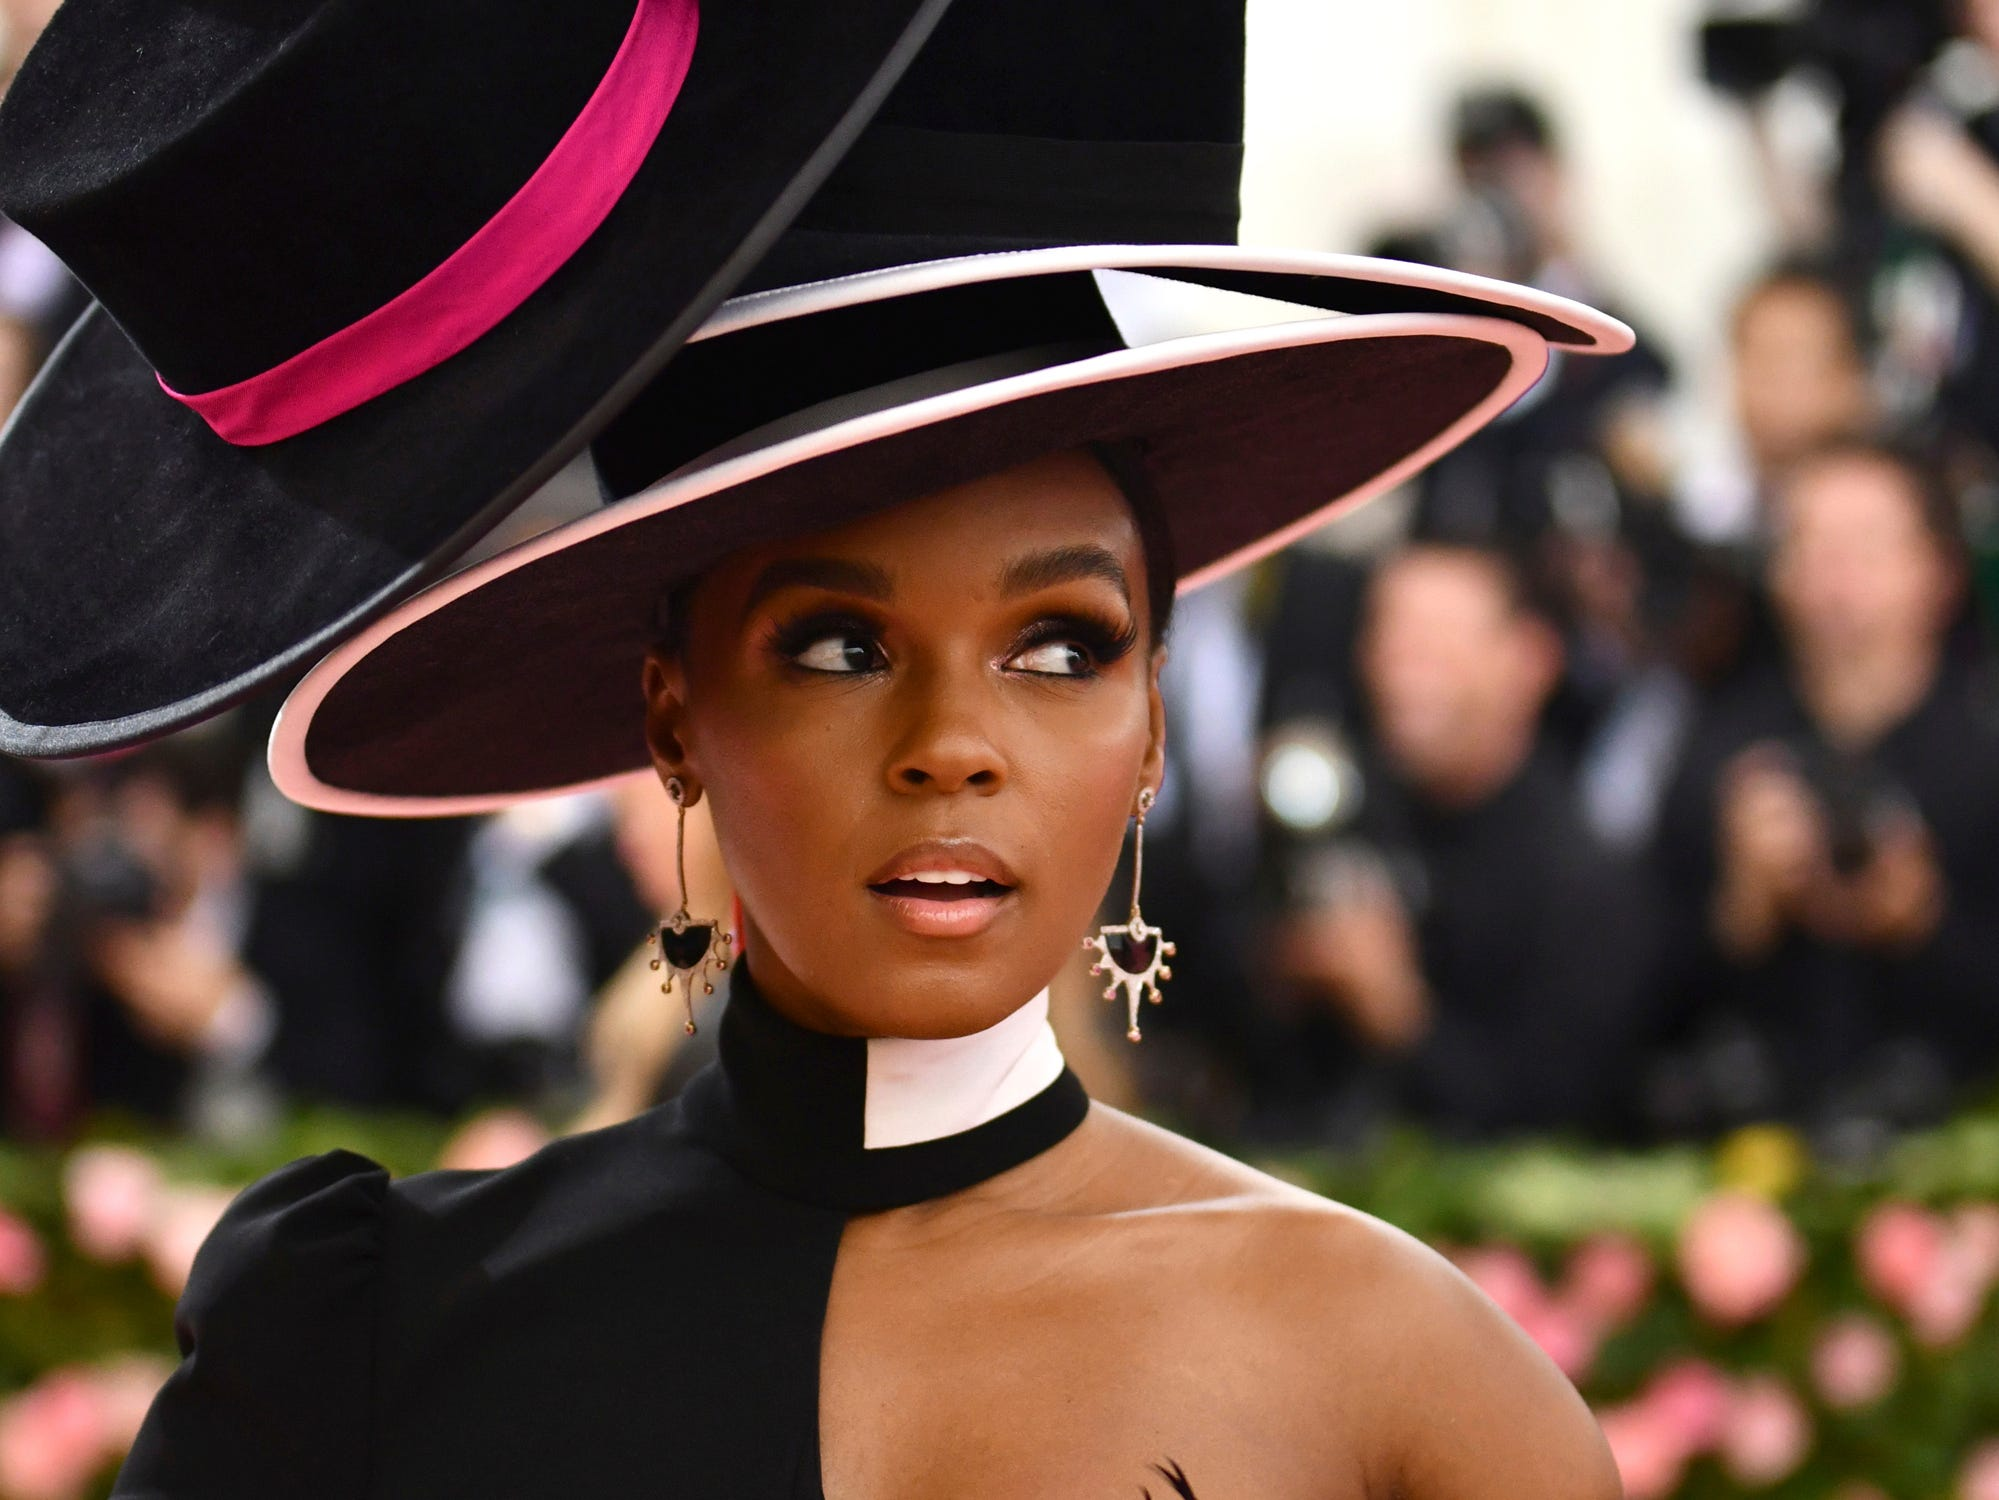 """Janelle Monae attends The Metropolitan Museum of Art's Costume Institute benefit gala celebrating the opening of the """"Camp: Notes on Fashion"""" exhibition on Monday, May 6, 2019, in New York. (Photo by Charles Sykes/Invision/AP) ORG XMIT: NYJW348"""